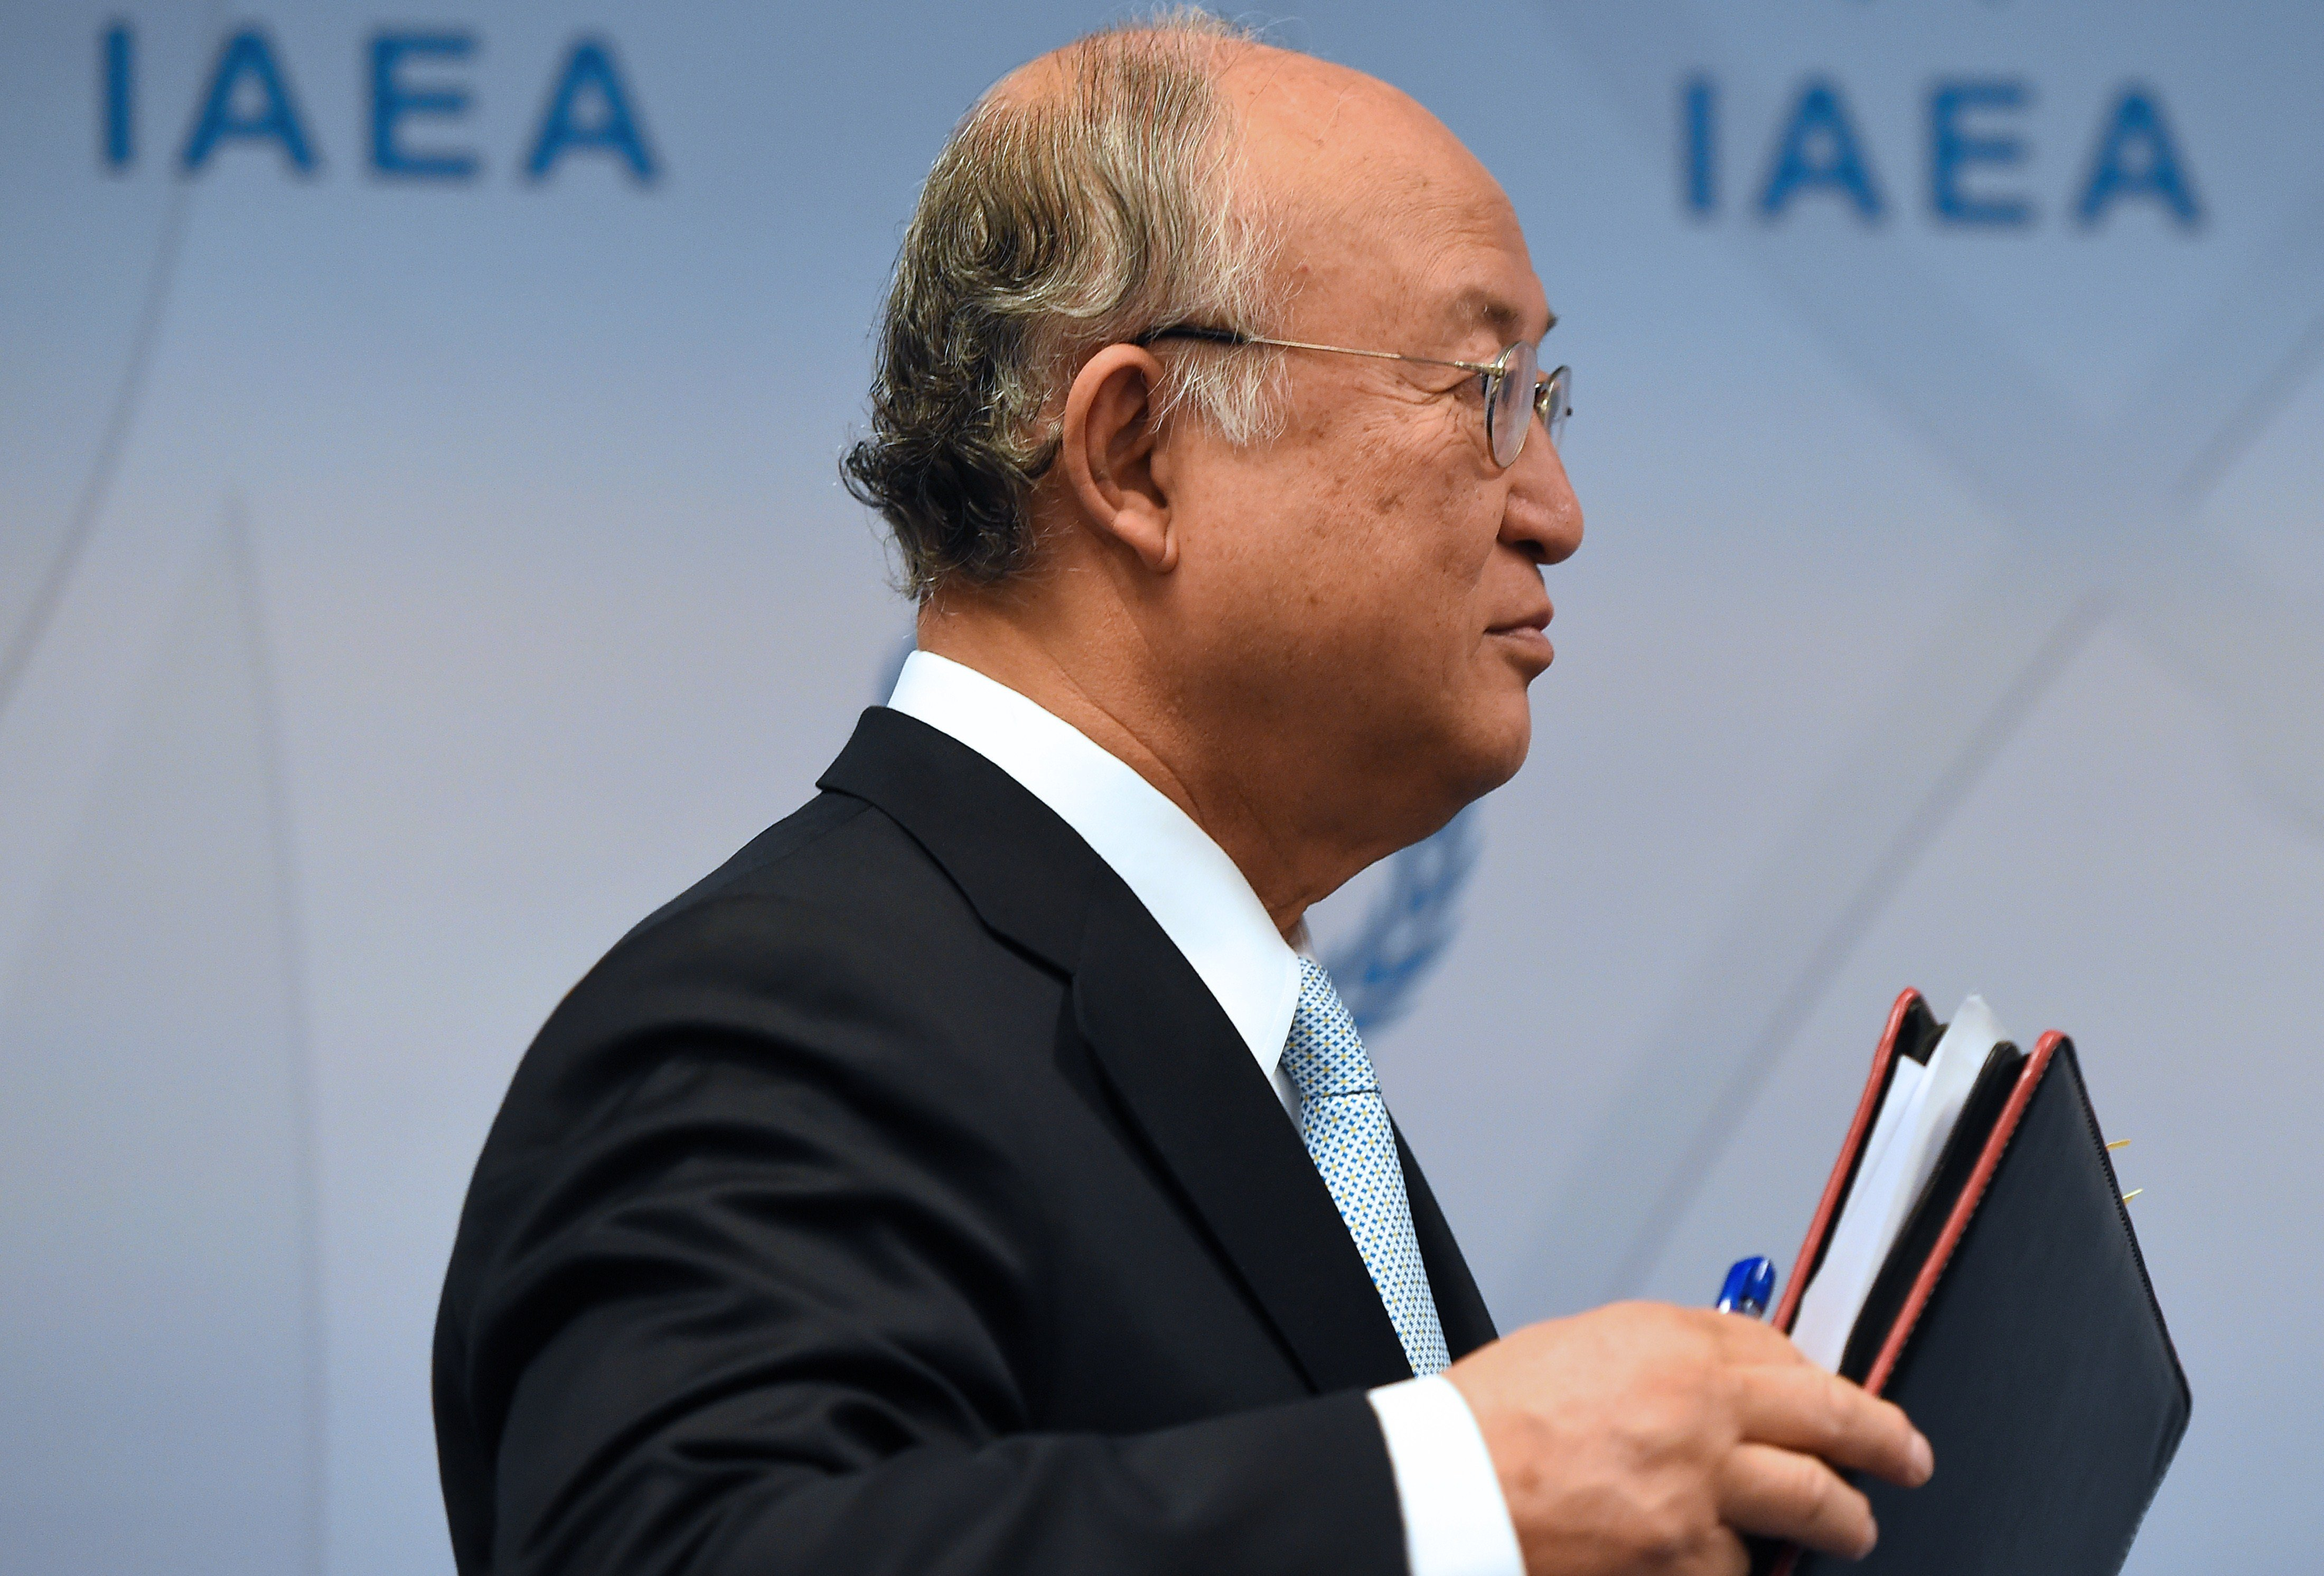 Yukiya Amano, director-general of the International Atomic Energy Agency, participates in a press conference at IAEA headquarters in Vienna on June 8. (JOE KLAMAR/AFP/Getty Images)